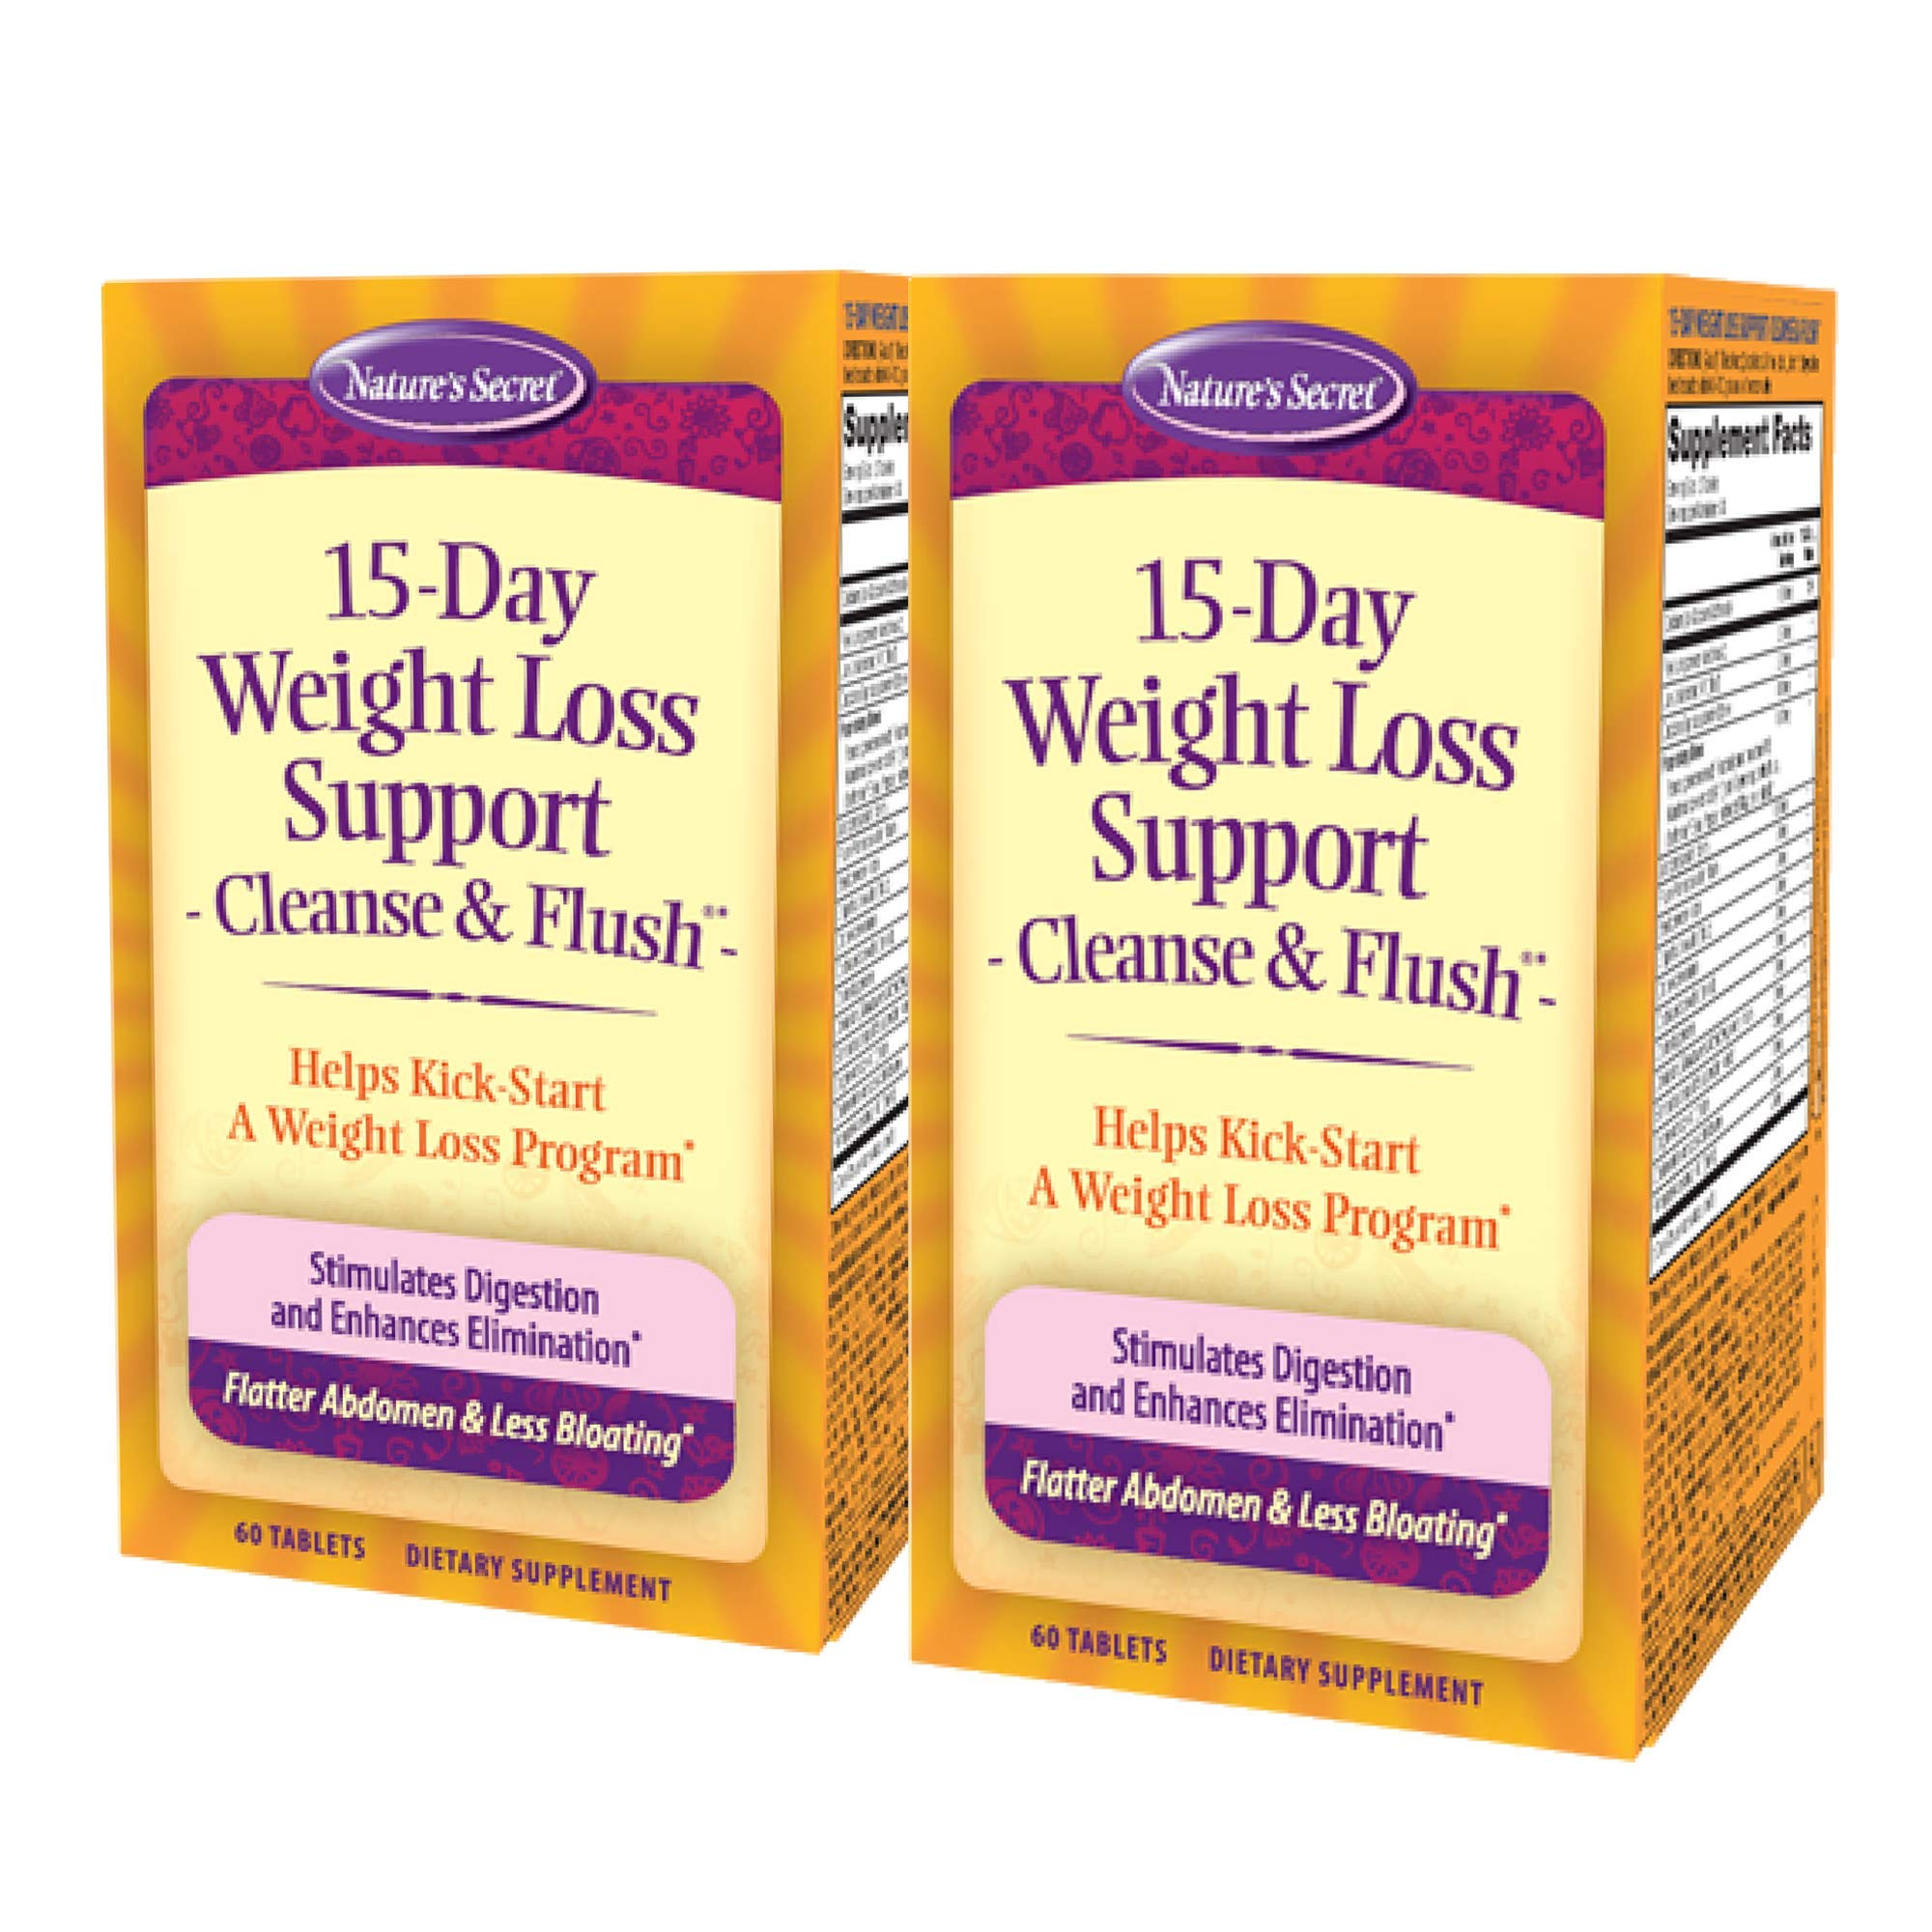 Nature's Secret 15-Day Weight Loss Support & Natural Energy Boost - Cleanse & Flush Stimulates Digestion, Enhances Toxin Elimination & Reduced Bloating with Healing Herbs - 60 Tablets (Pack of 2)